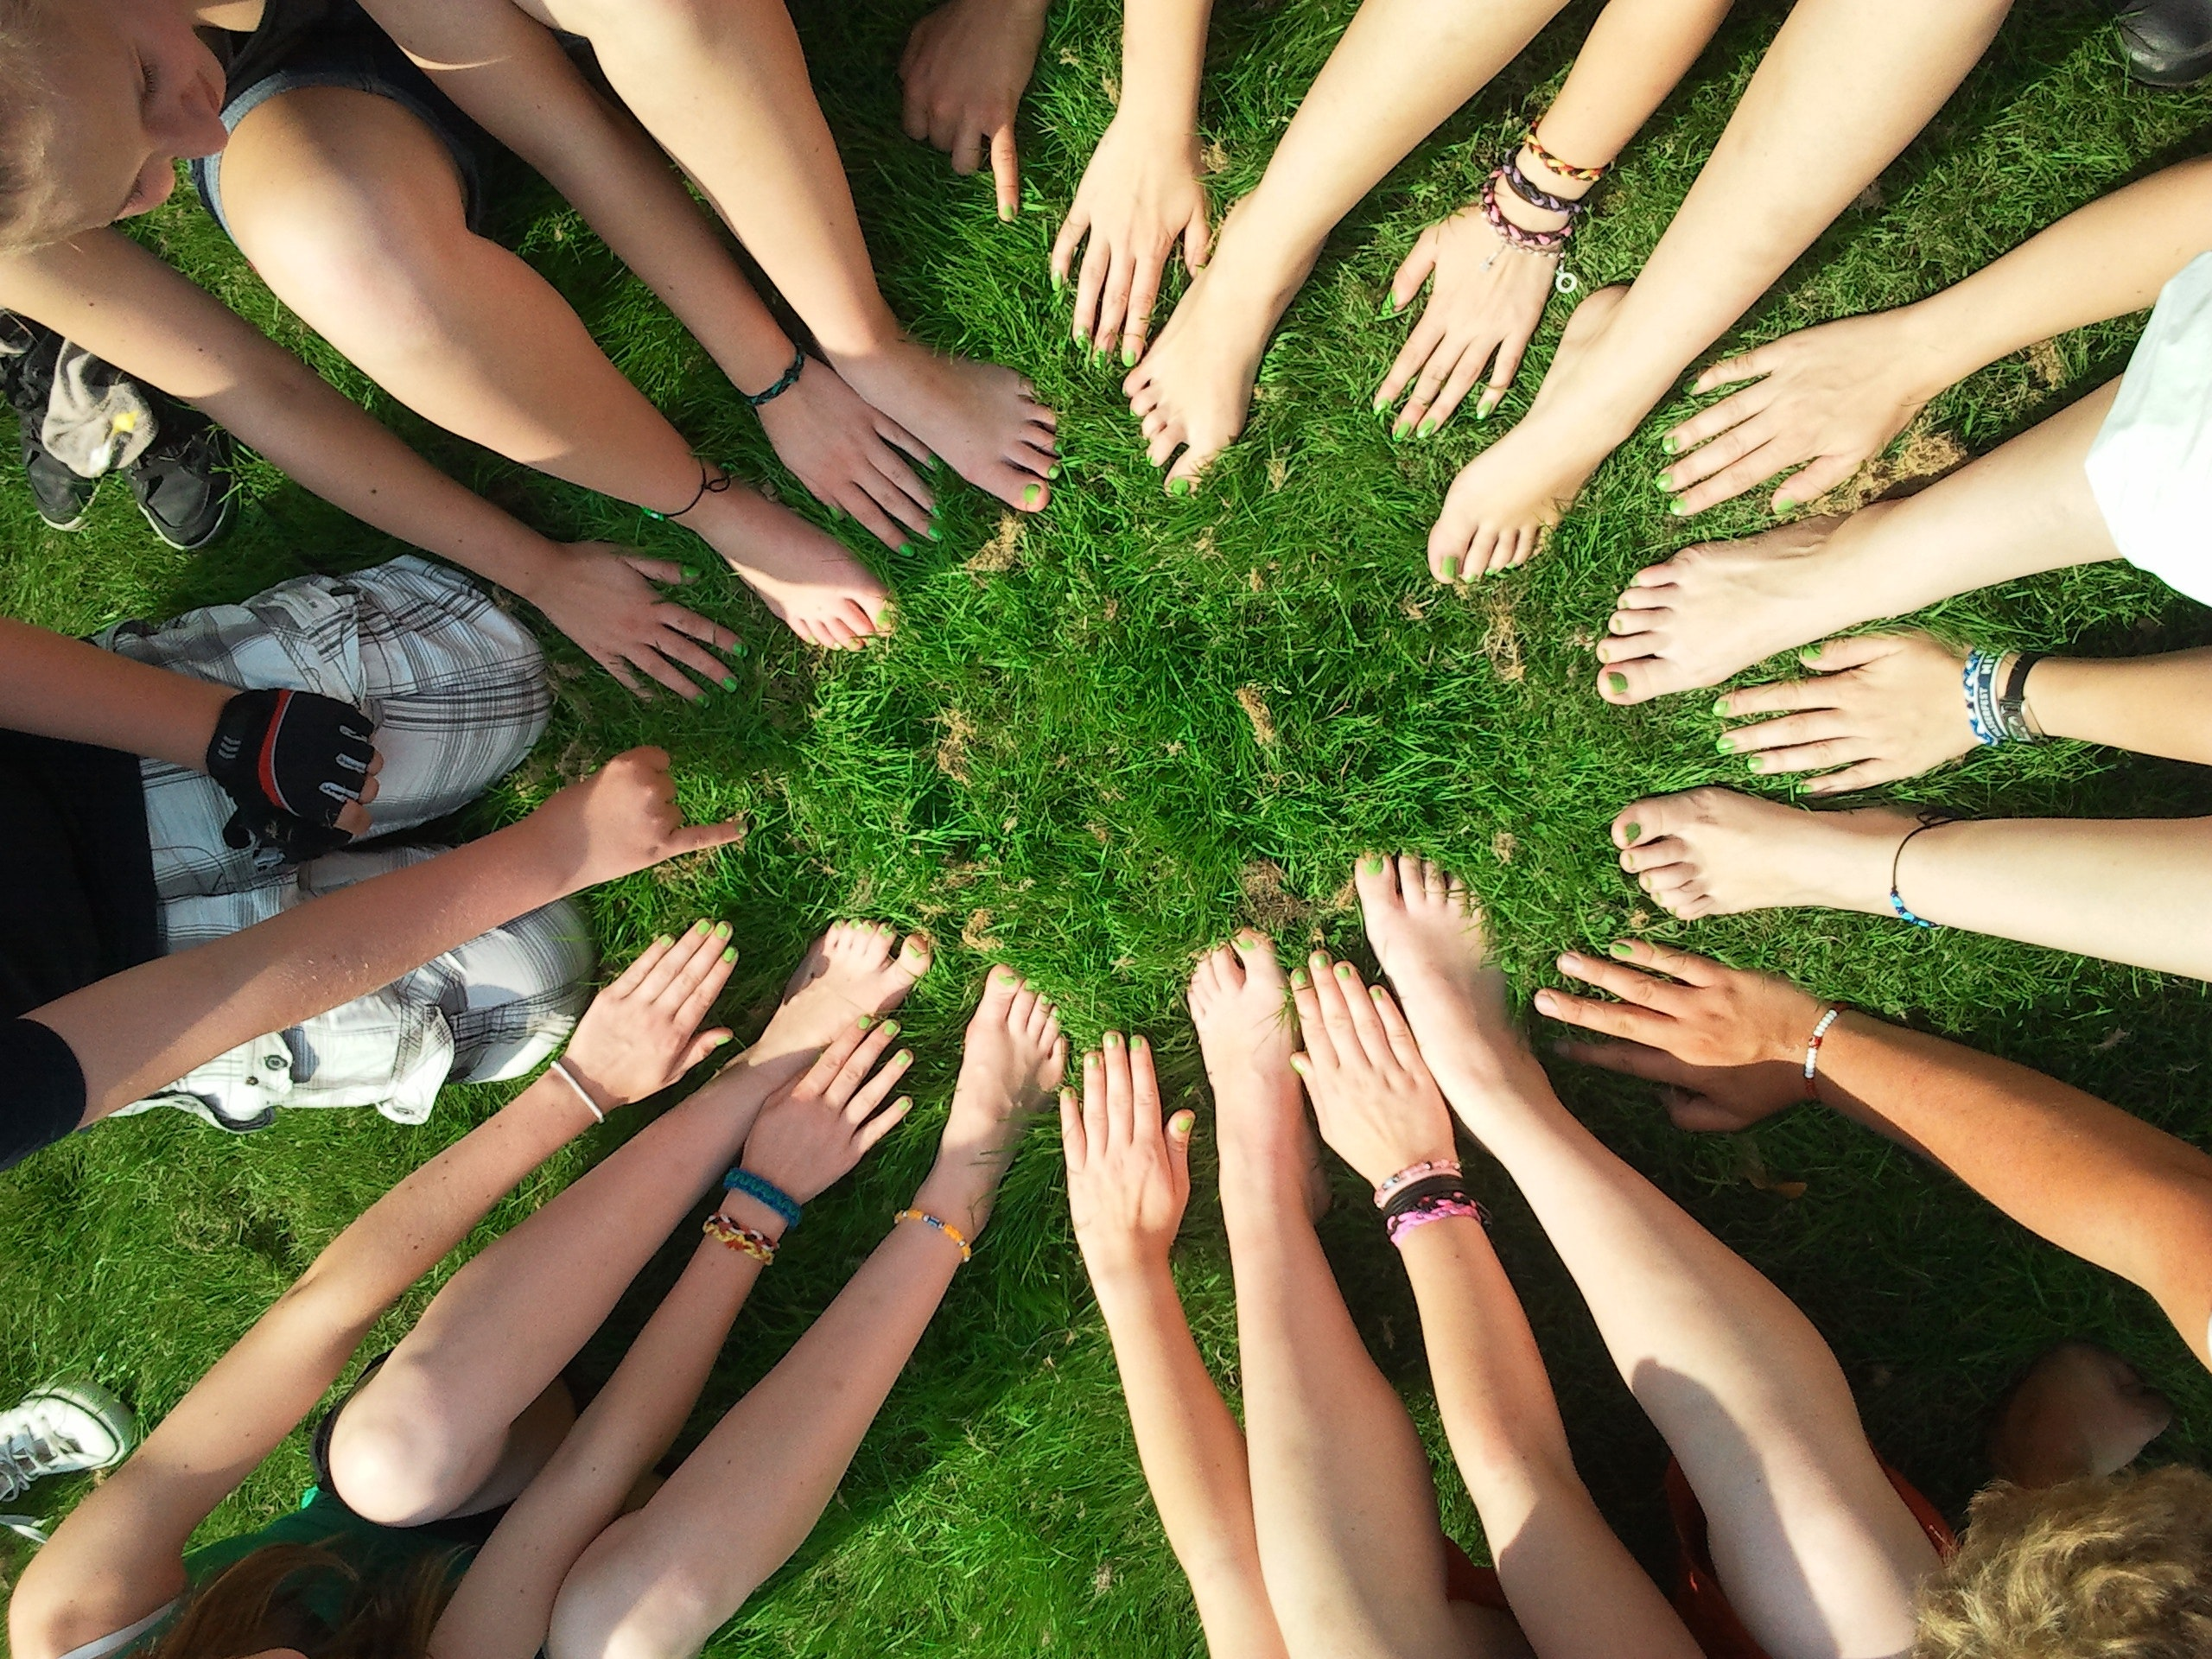 person-gather-hand-and-foot-in-center-53958